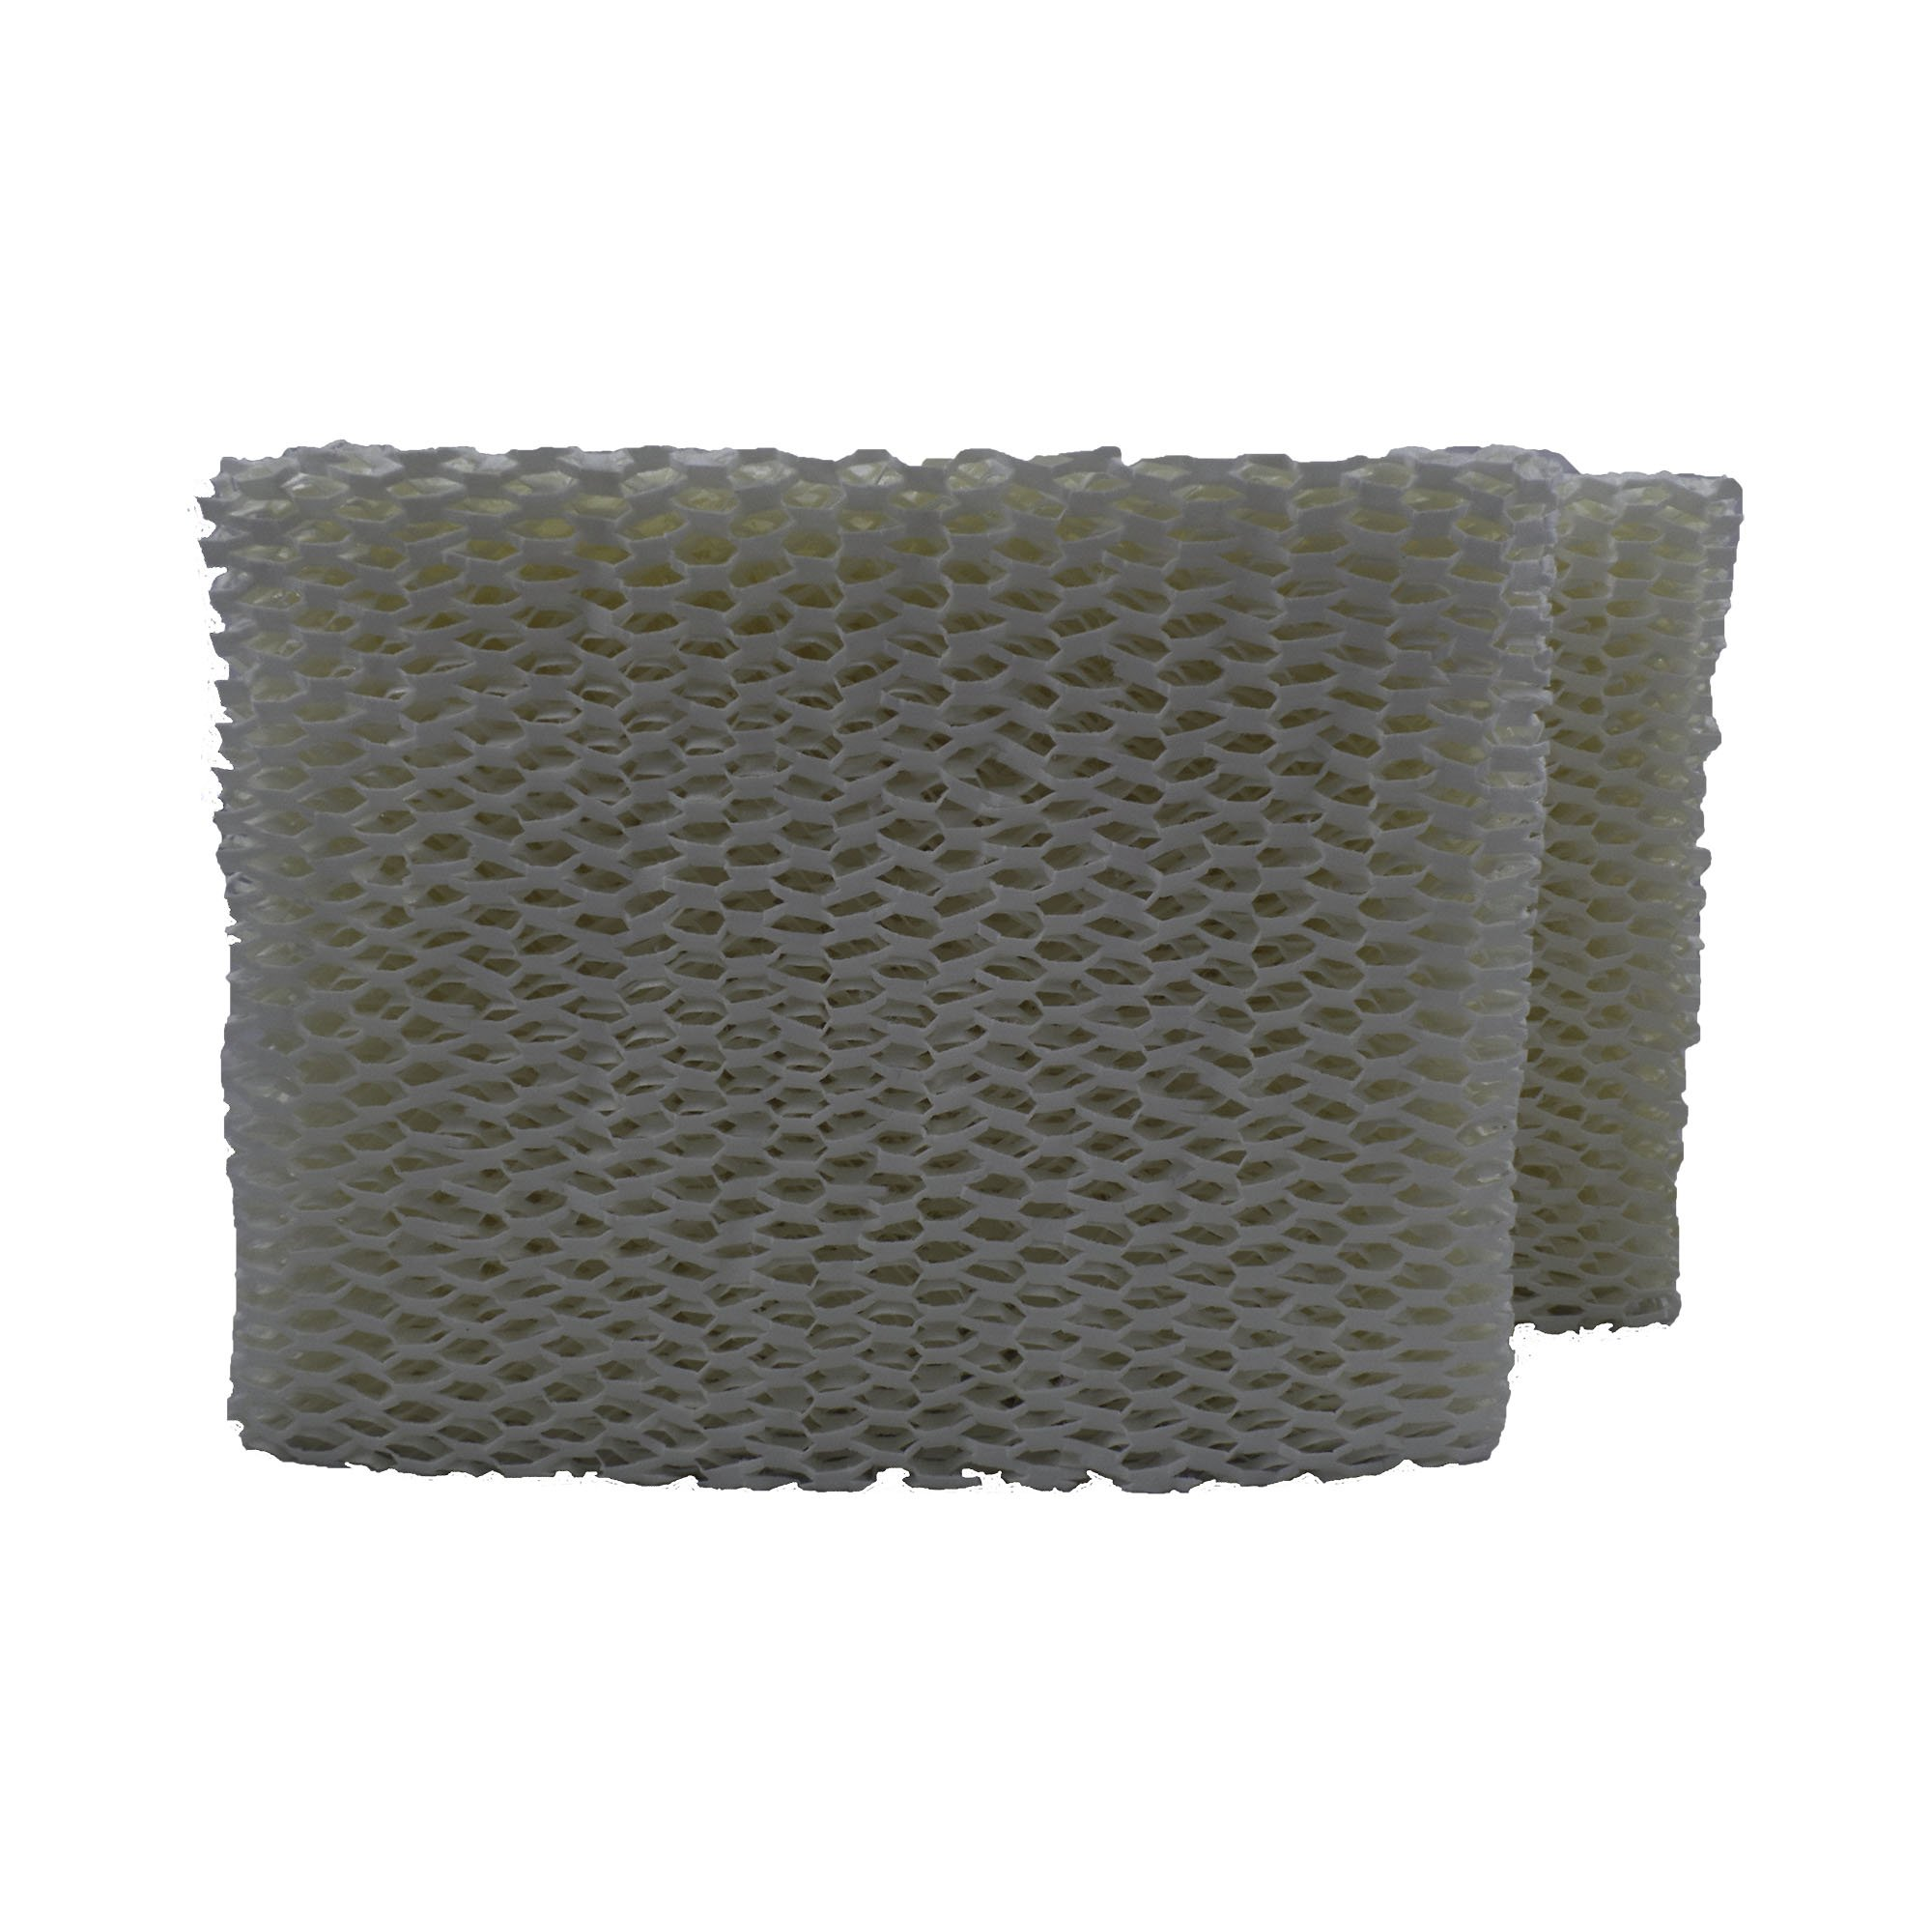 Air Filter Factory 2 PACK Compatible Replacement For Bionaire W7, W-7, W9, W-9, W9s, W-9s, W9H, W25, C22, C33 Humidifier Filter